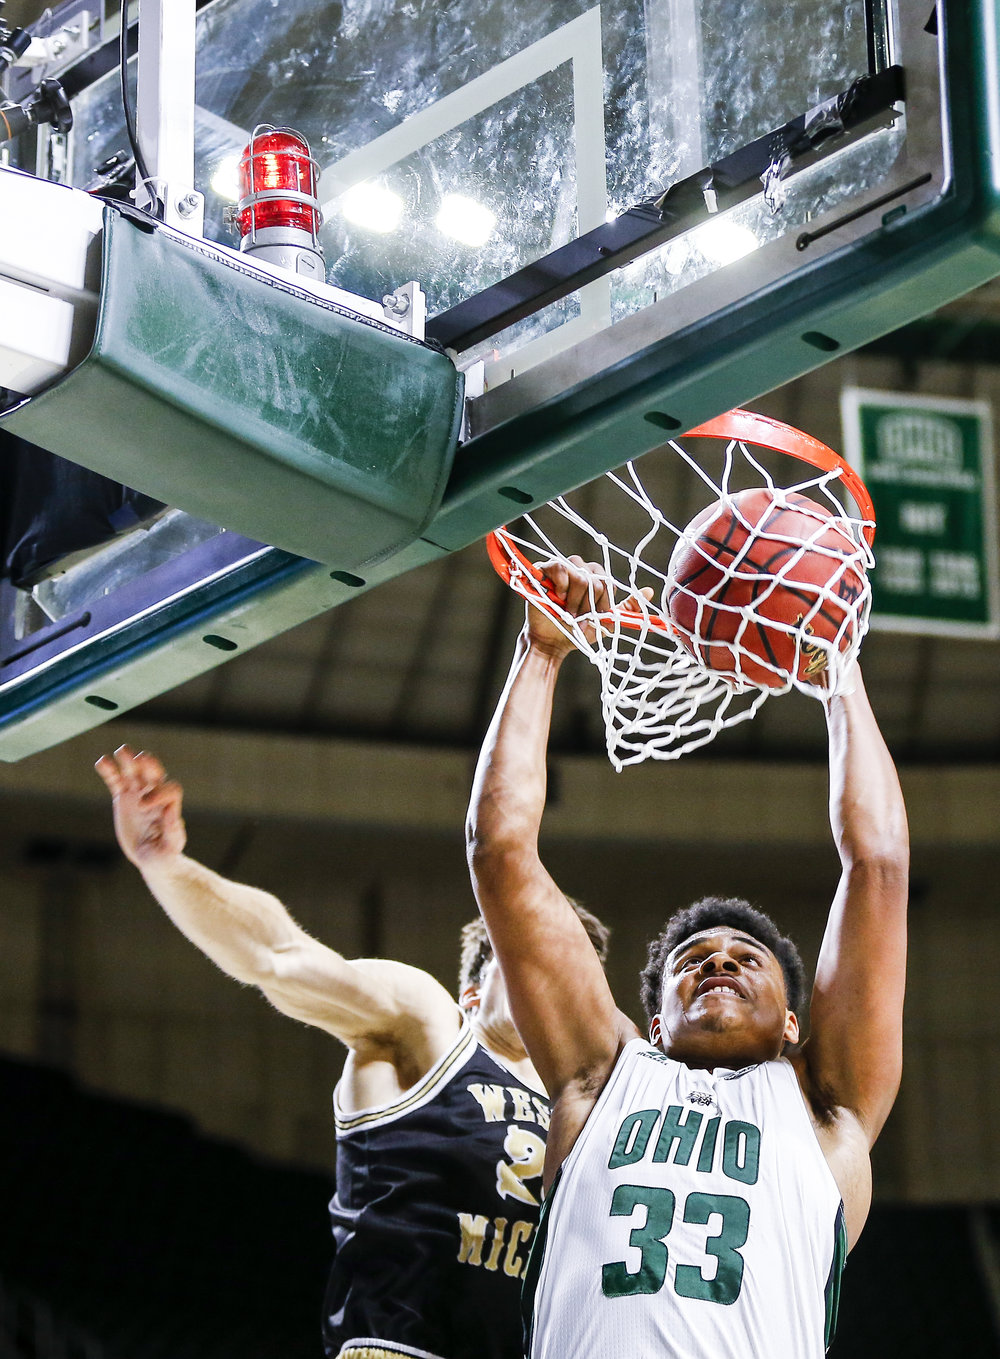 Ohio forward Antonio Campbell dunks against Western Michigan guard Taylor Perry in the Convocation Center on Jan 19. Ohio won 82-64. (PATRICK CONNOLLY | STAFF PHOTOGRAPHER)